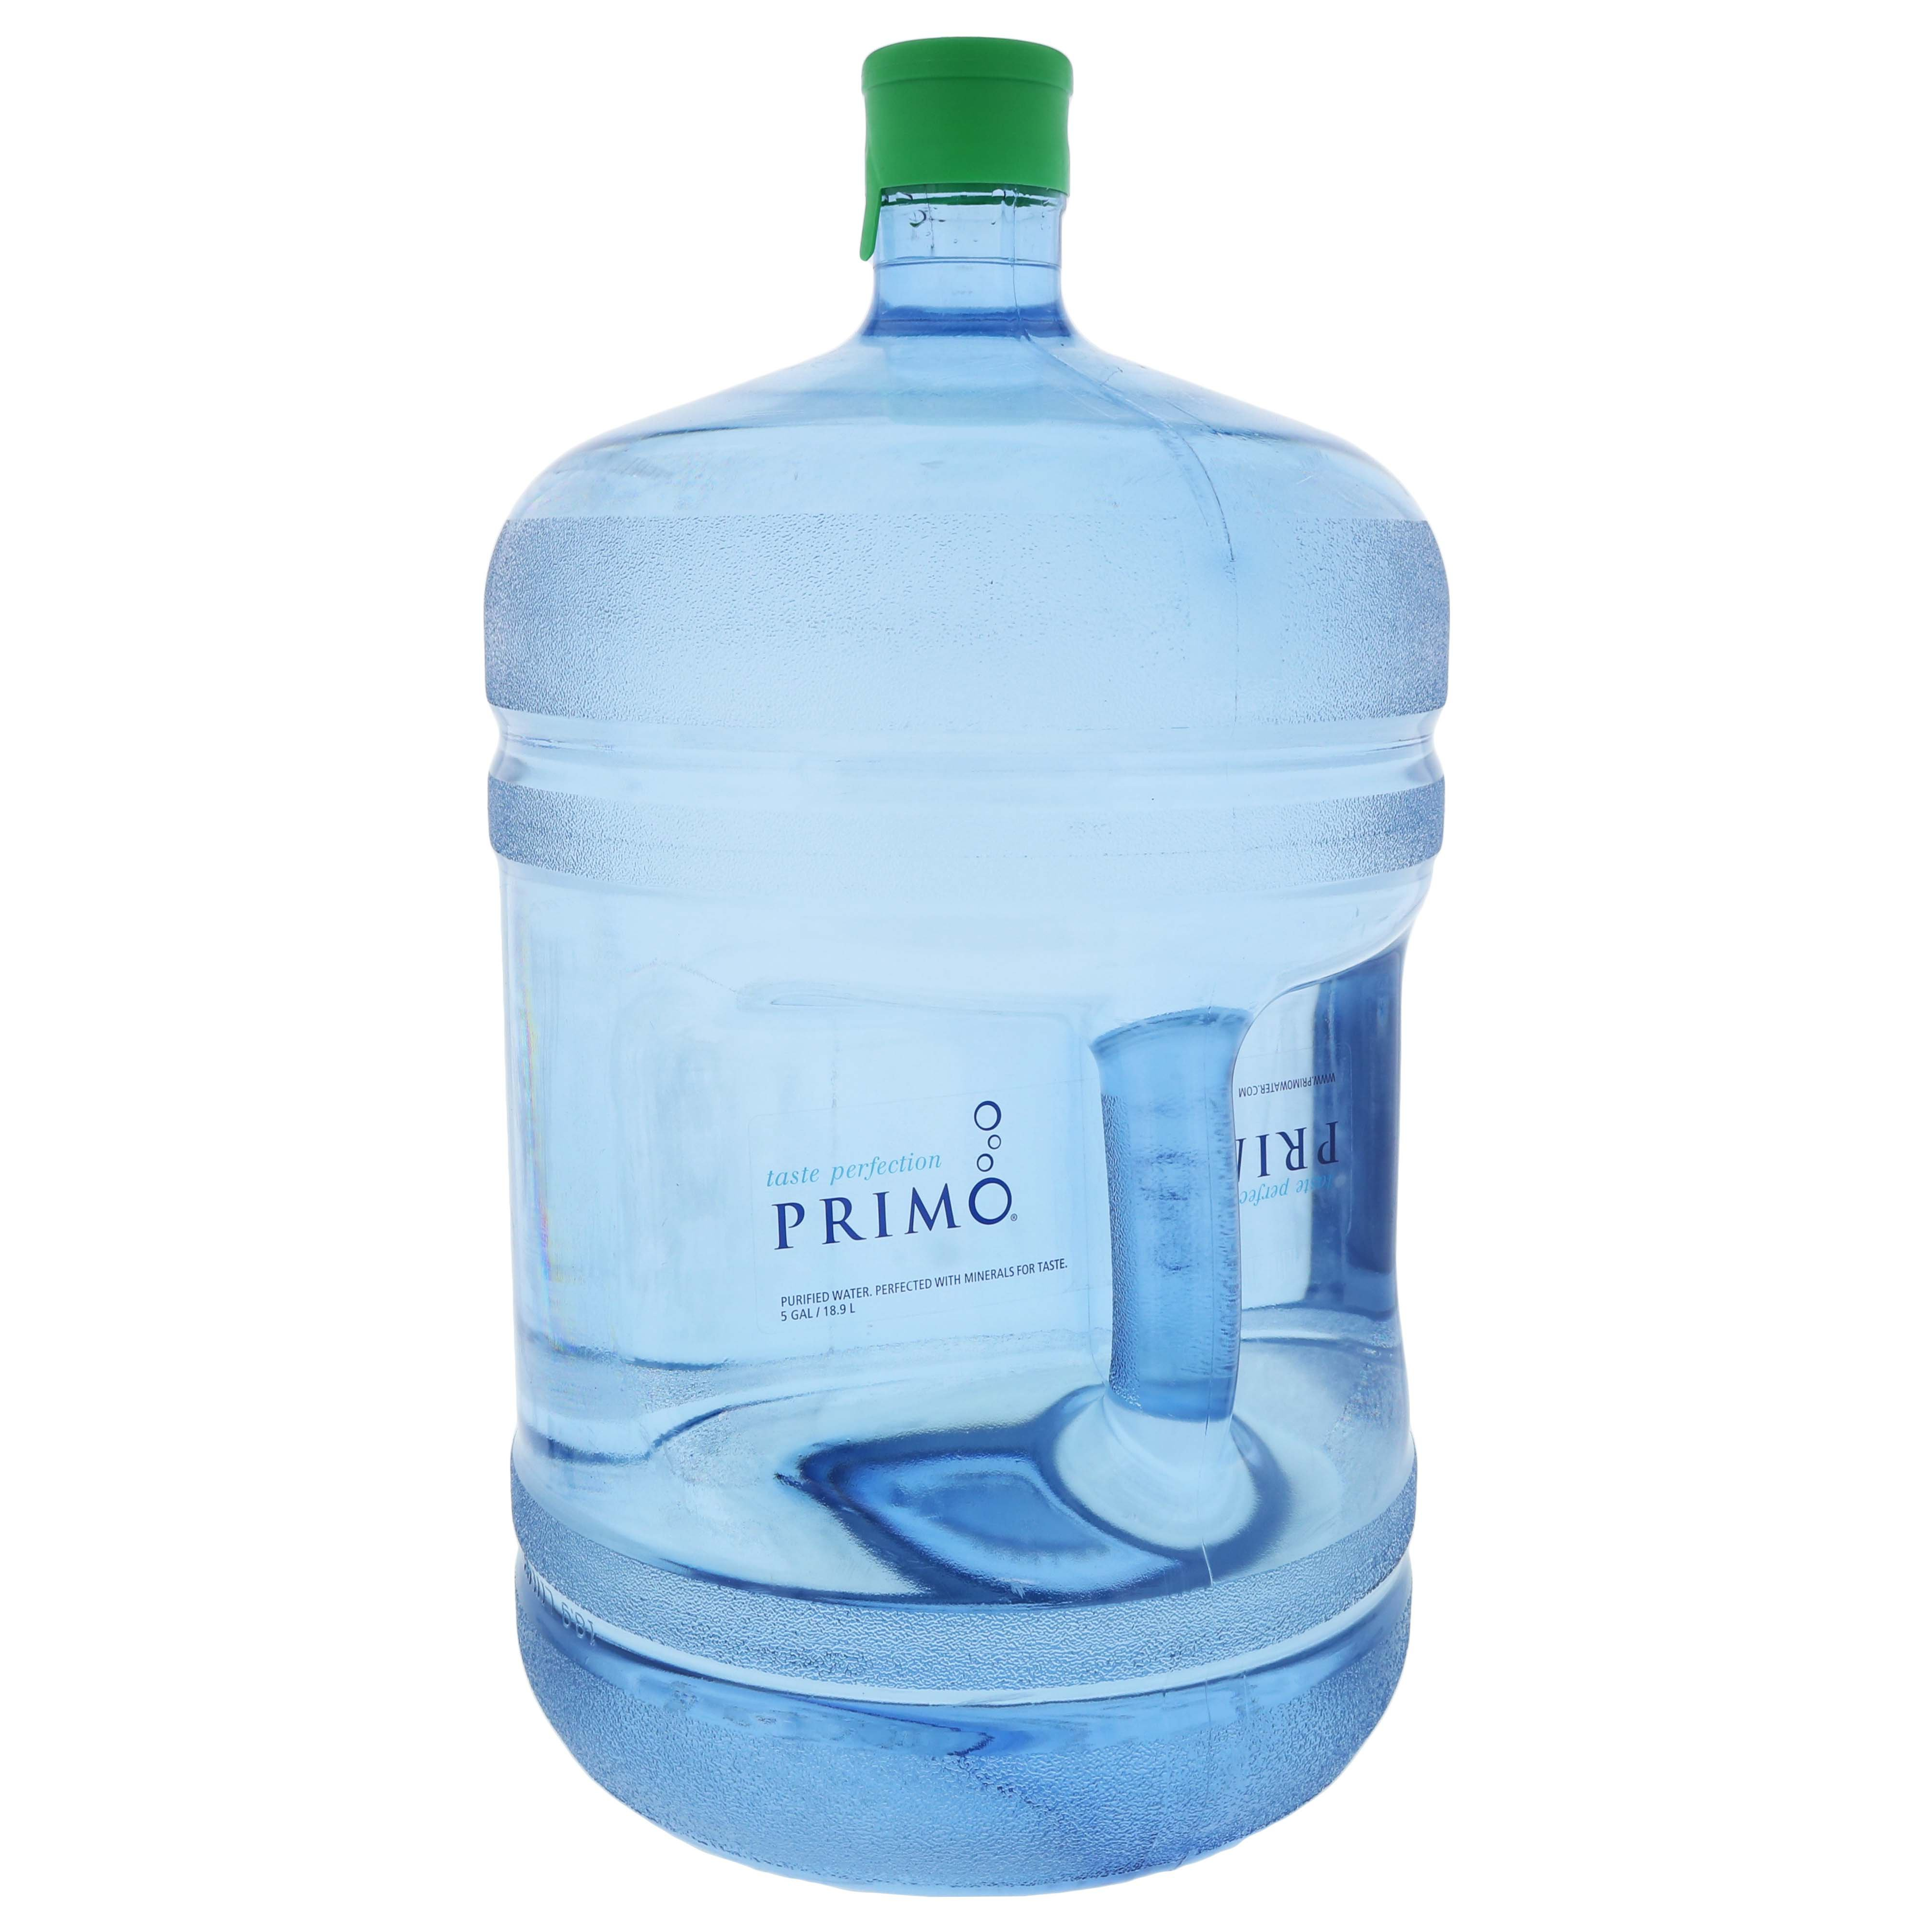 Primo Purified Water - Shop Water at HEB